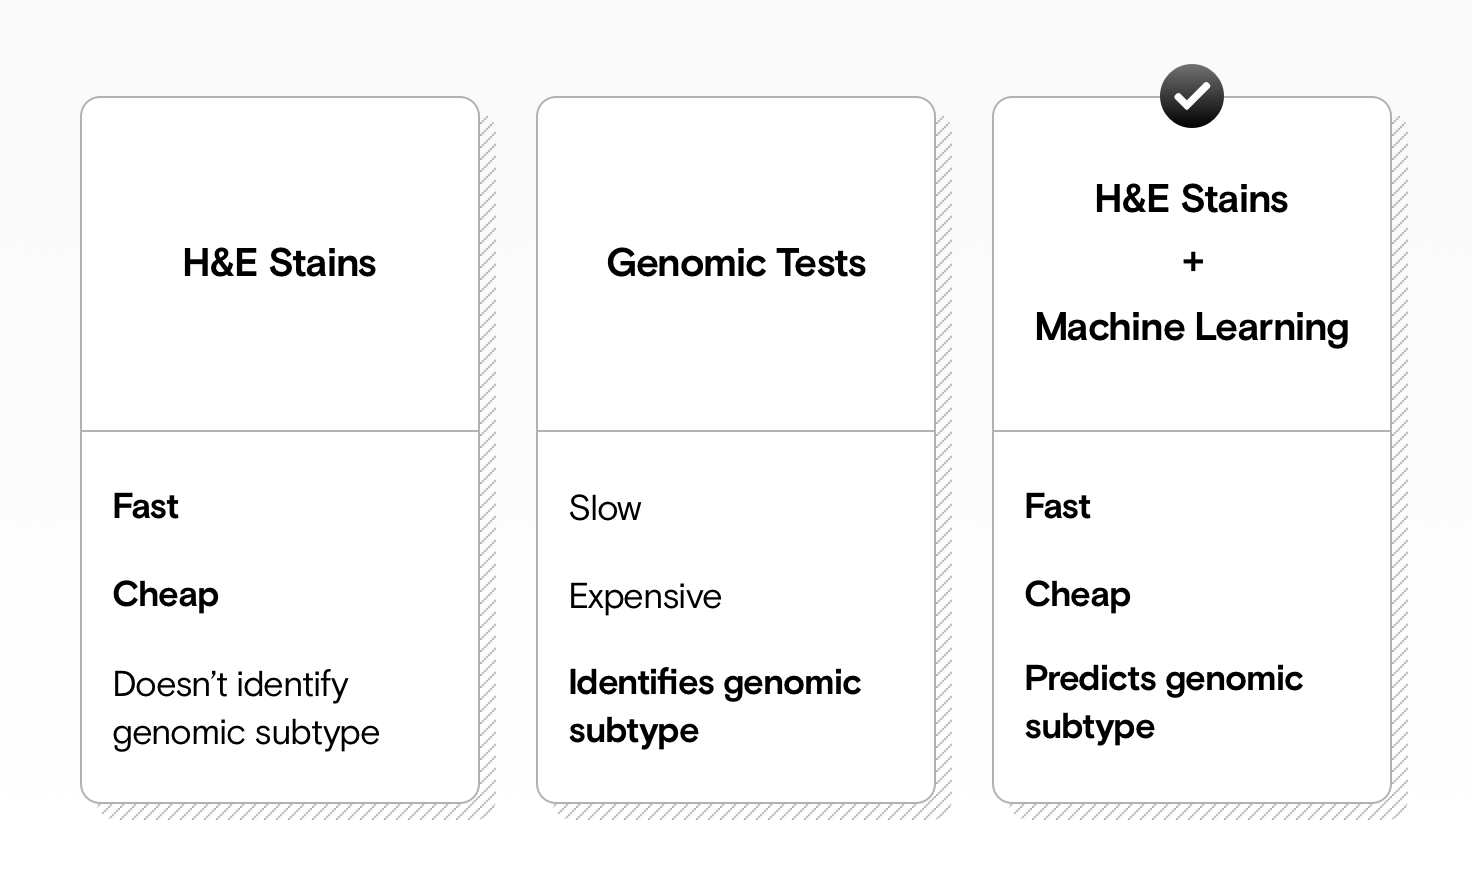 A table showing that H&E stains are fast and cheap, but do now allow for genomic subtype analysis. Genomic tests are slow and expensive, but can provide genomic subtype analysis. Combining H&E stains with machine learning is fast, cheap, and can predict genomic subtype analysis.